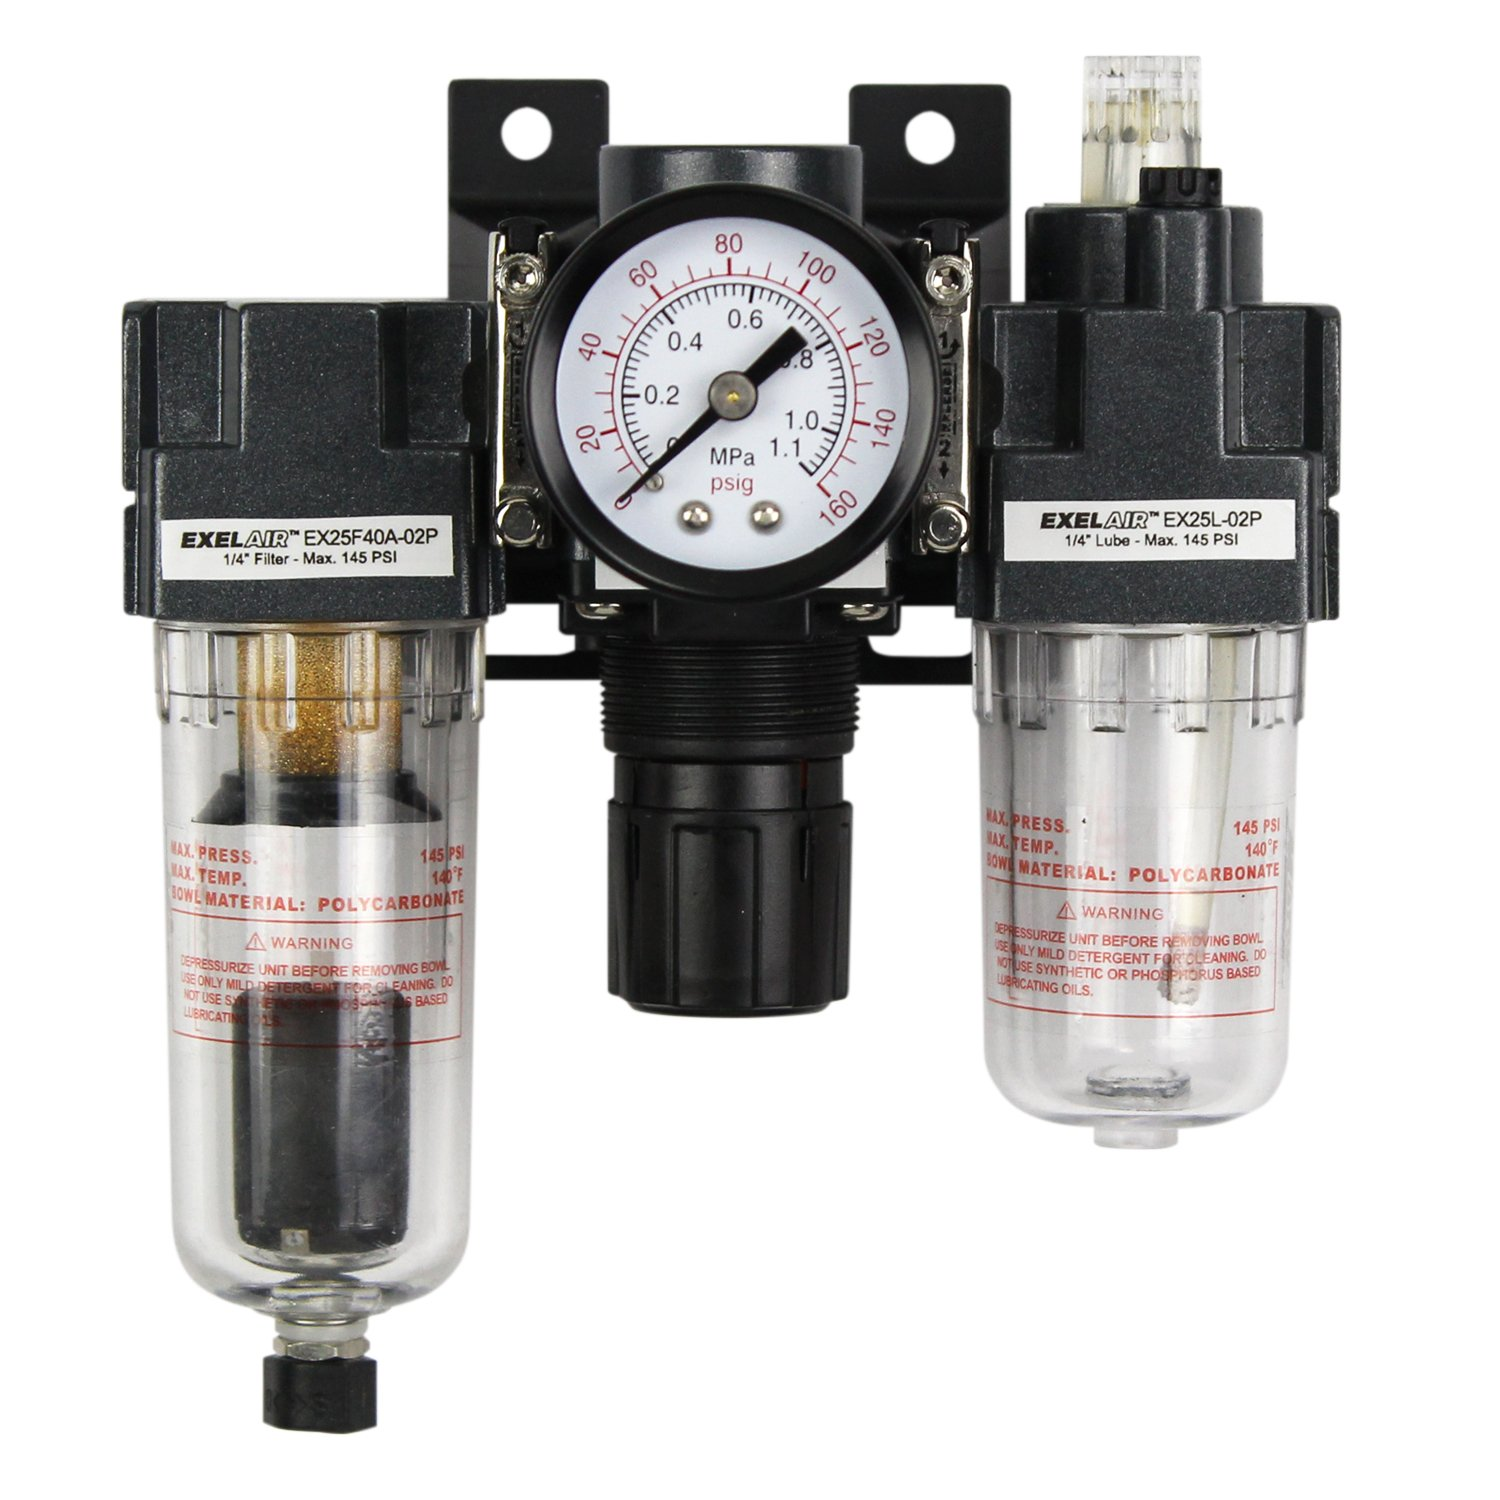 ExelAir EX25FRL40A-02P 1/4'' NPT Mini Polycarbonate FRL Air Filter Regulator and Lubricator System by EXELAIR